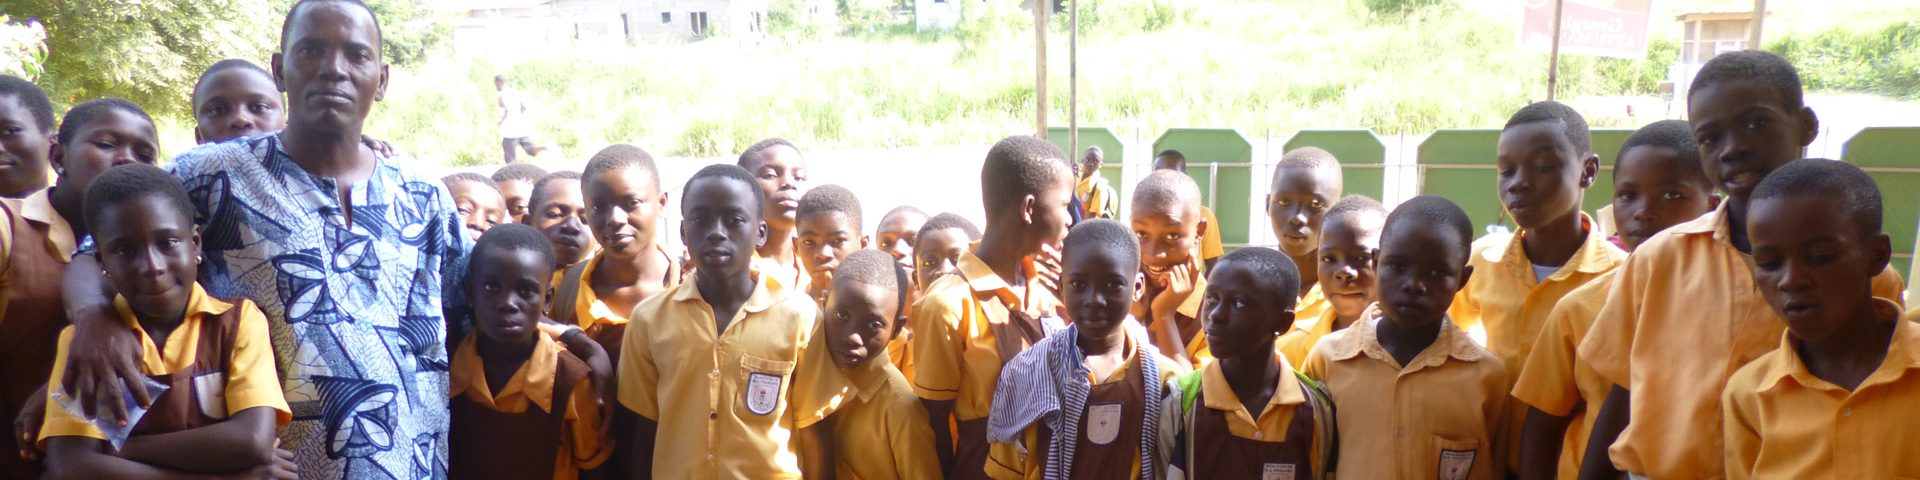 Leerlingen van computerschool in Ghana